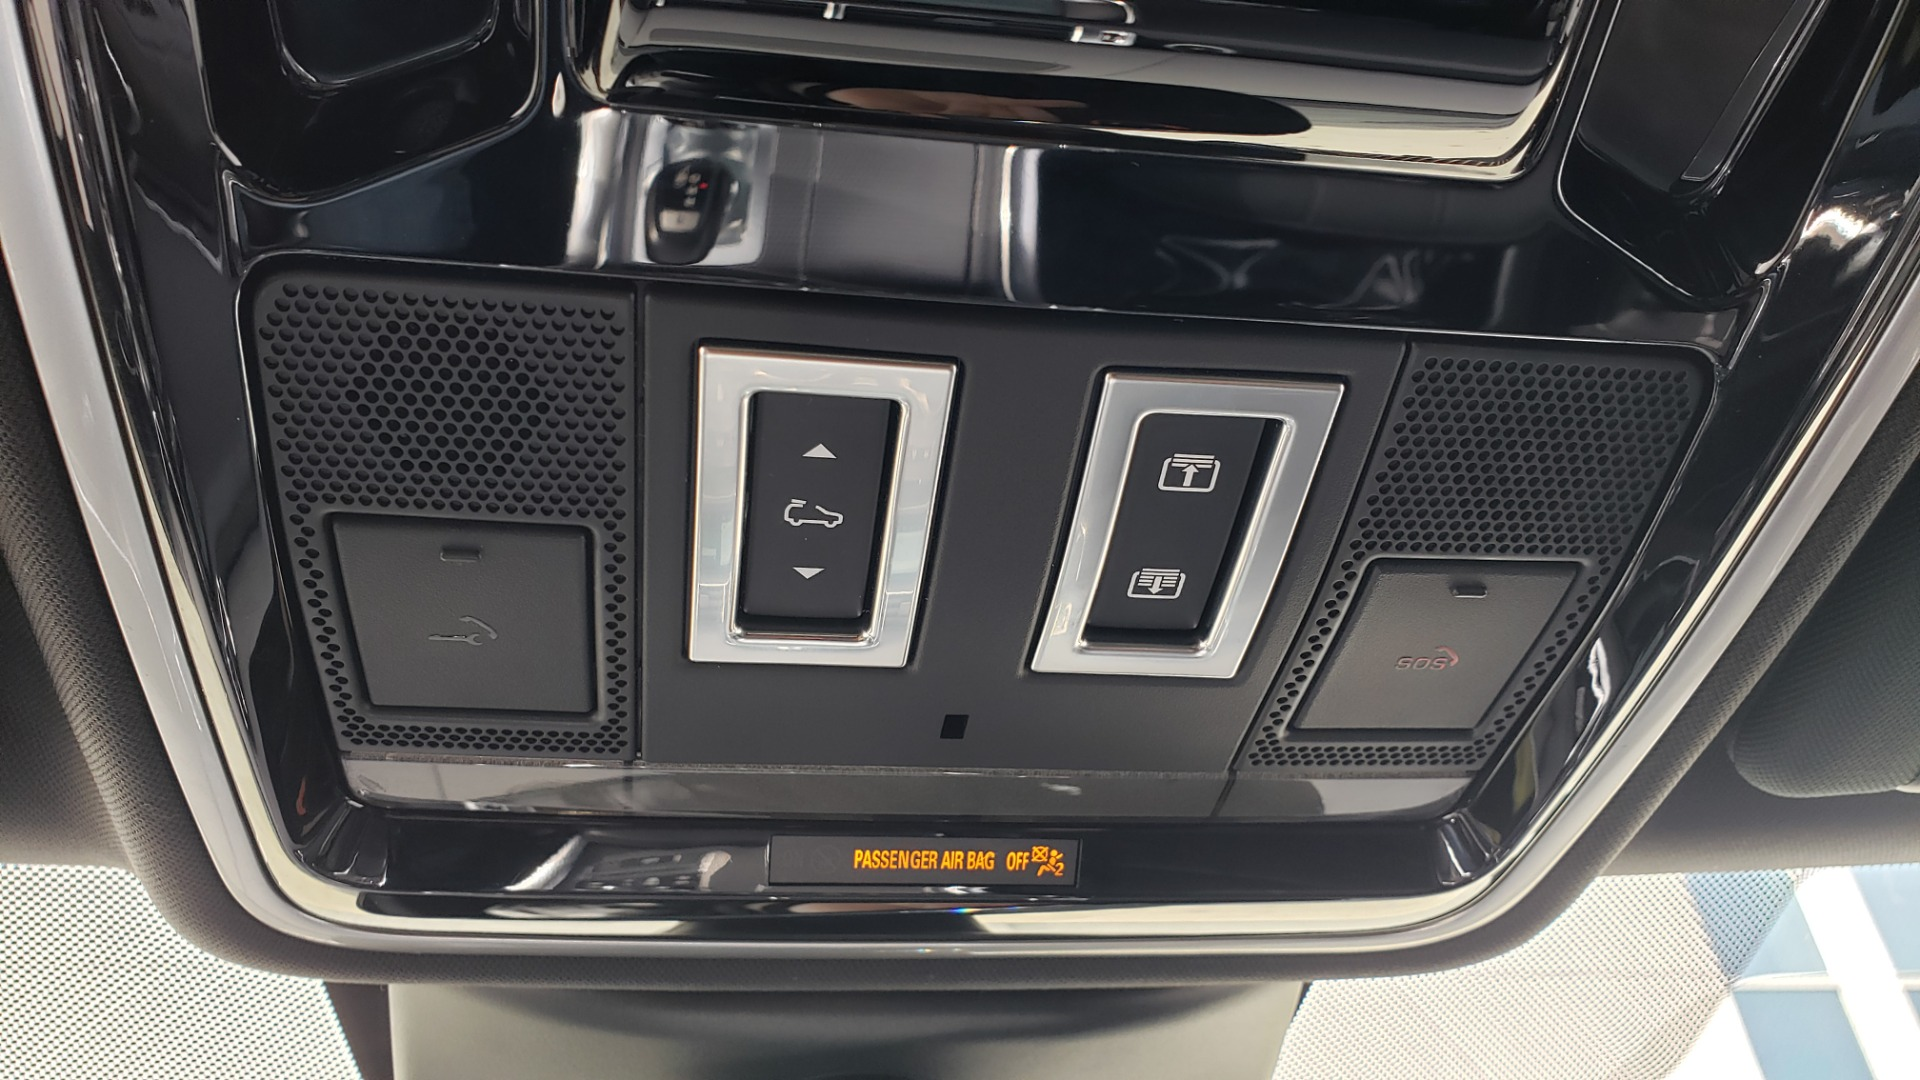 Used 2017 Land Rover RANGE ROVER SPORT HSE DYNAMIC / SC V6 / NAV / MERIDIAN / PANO-ROOF / REARVIEW for sale Sold at Formula Imports in Charlotte NC 28227 157